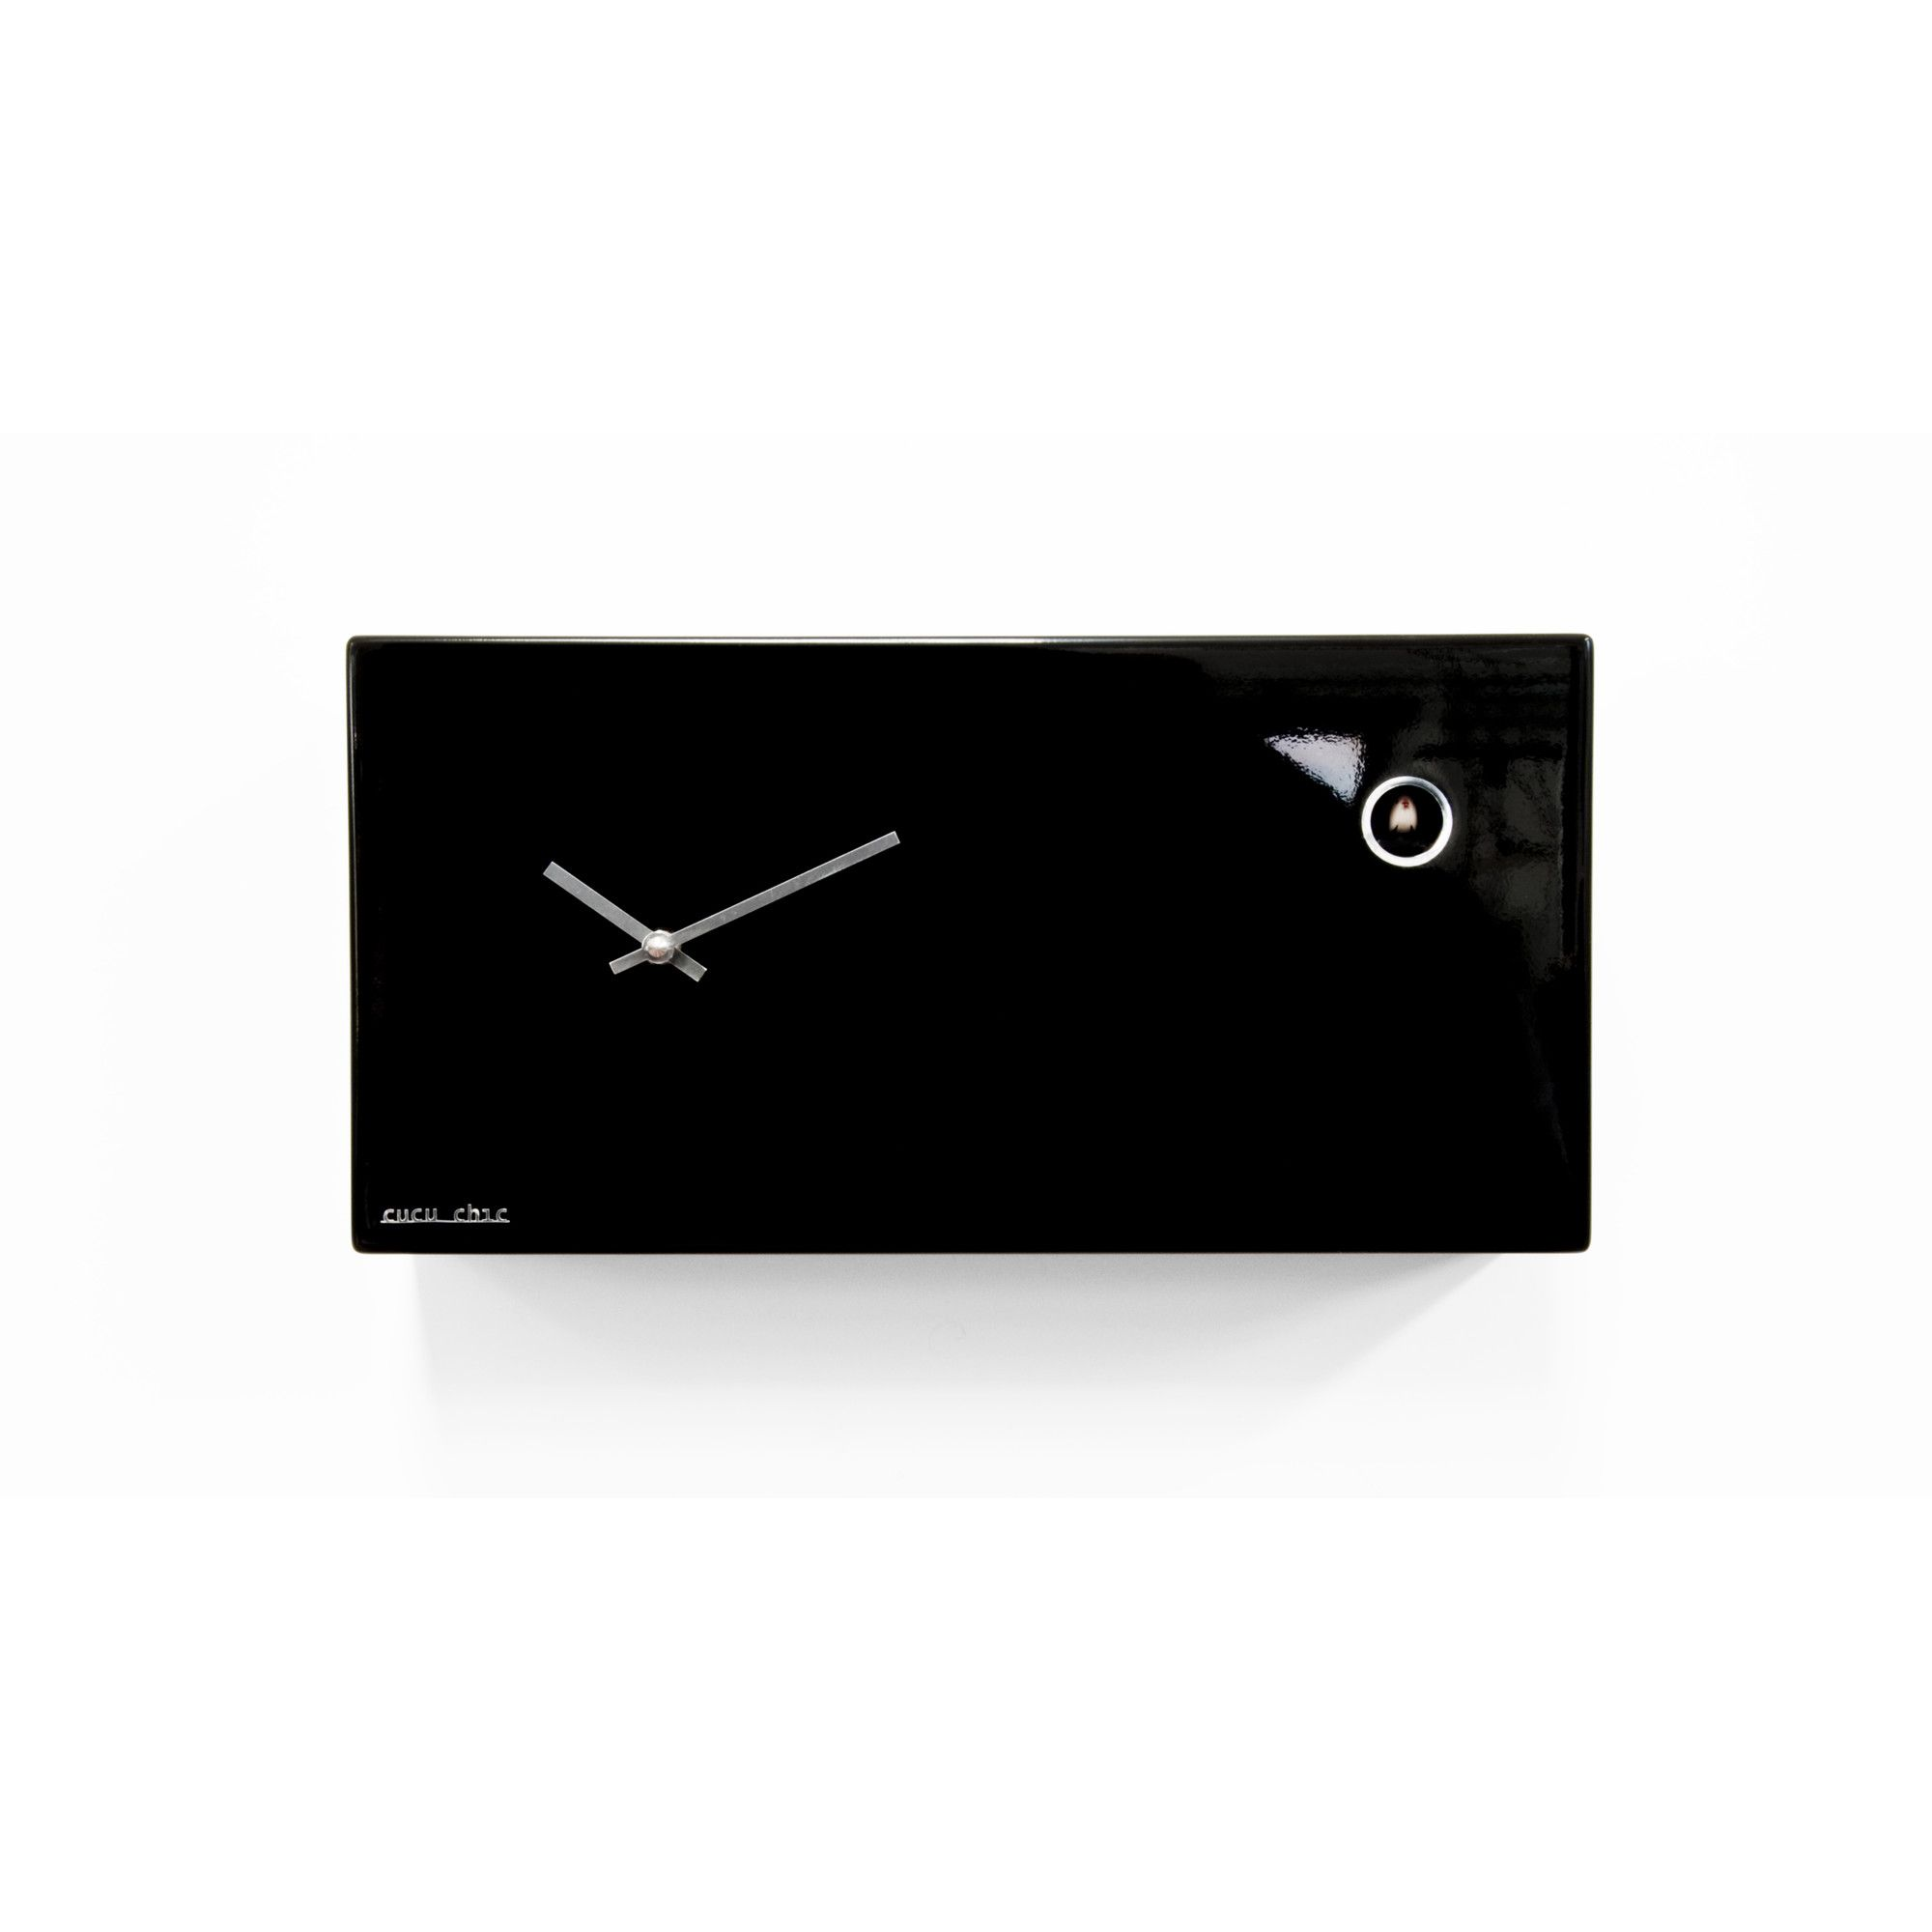 Progetti Cucu Chic Cuckoo Clock - Gloss White at Tesco Direct